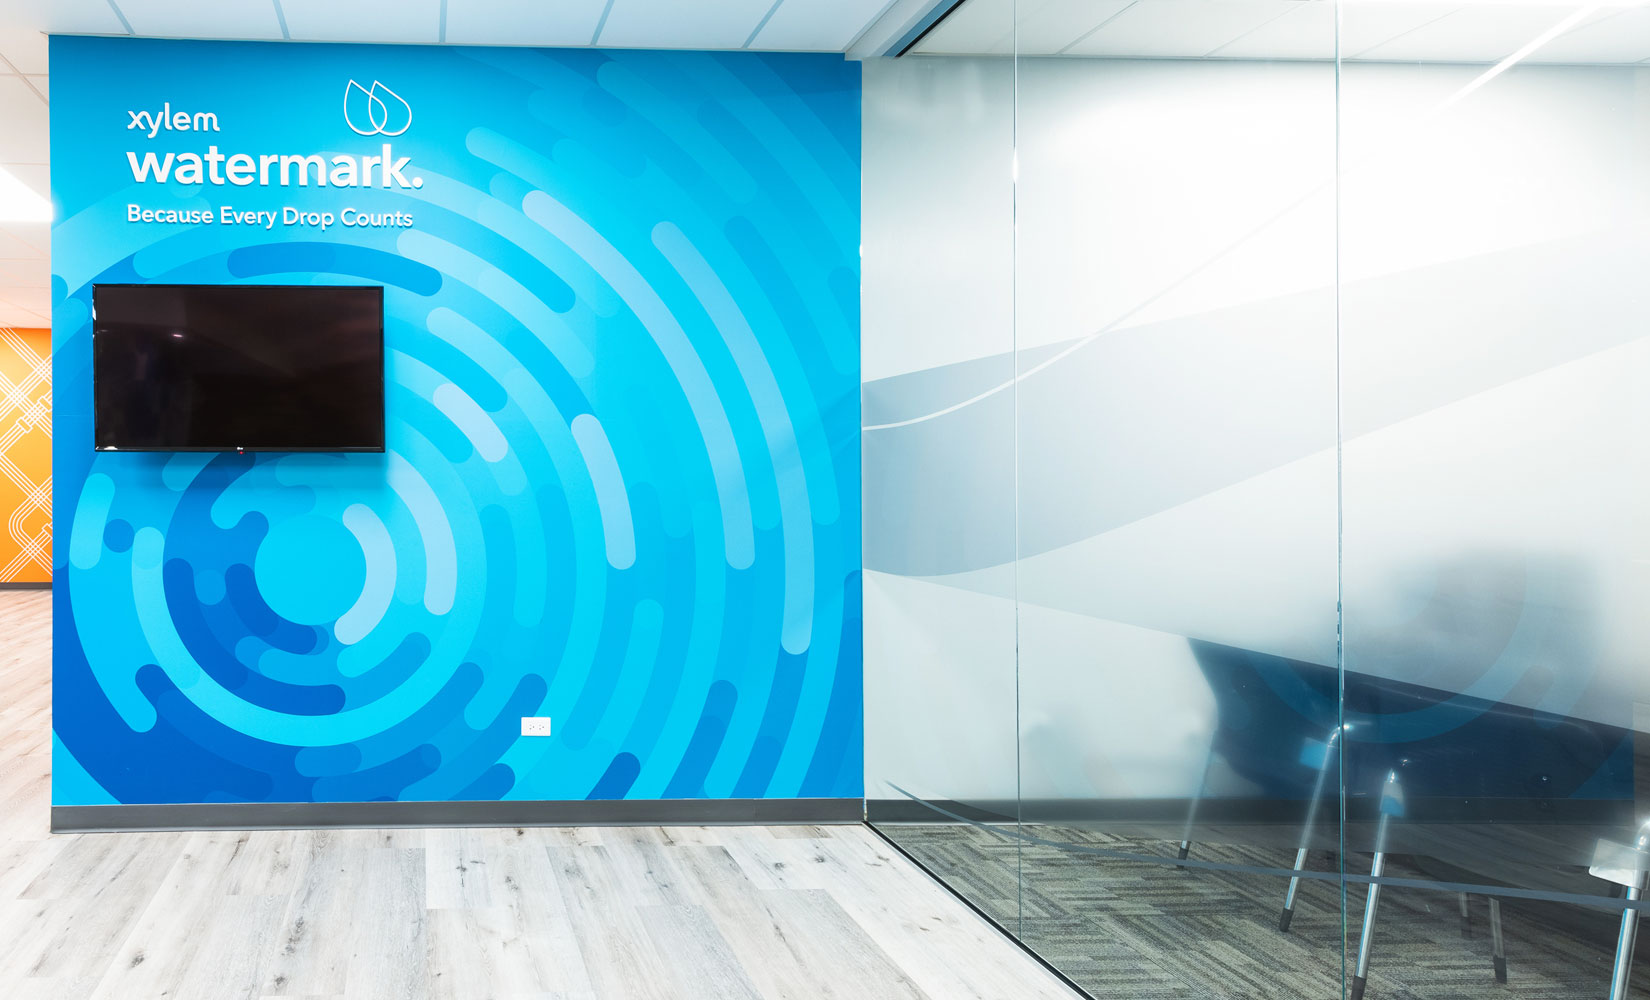 Xylem Branded Environment - Wall Watermark